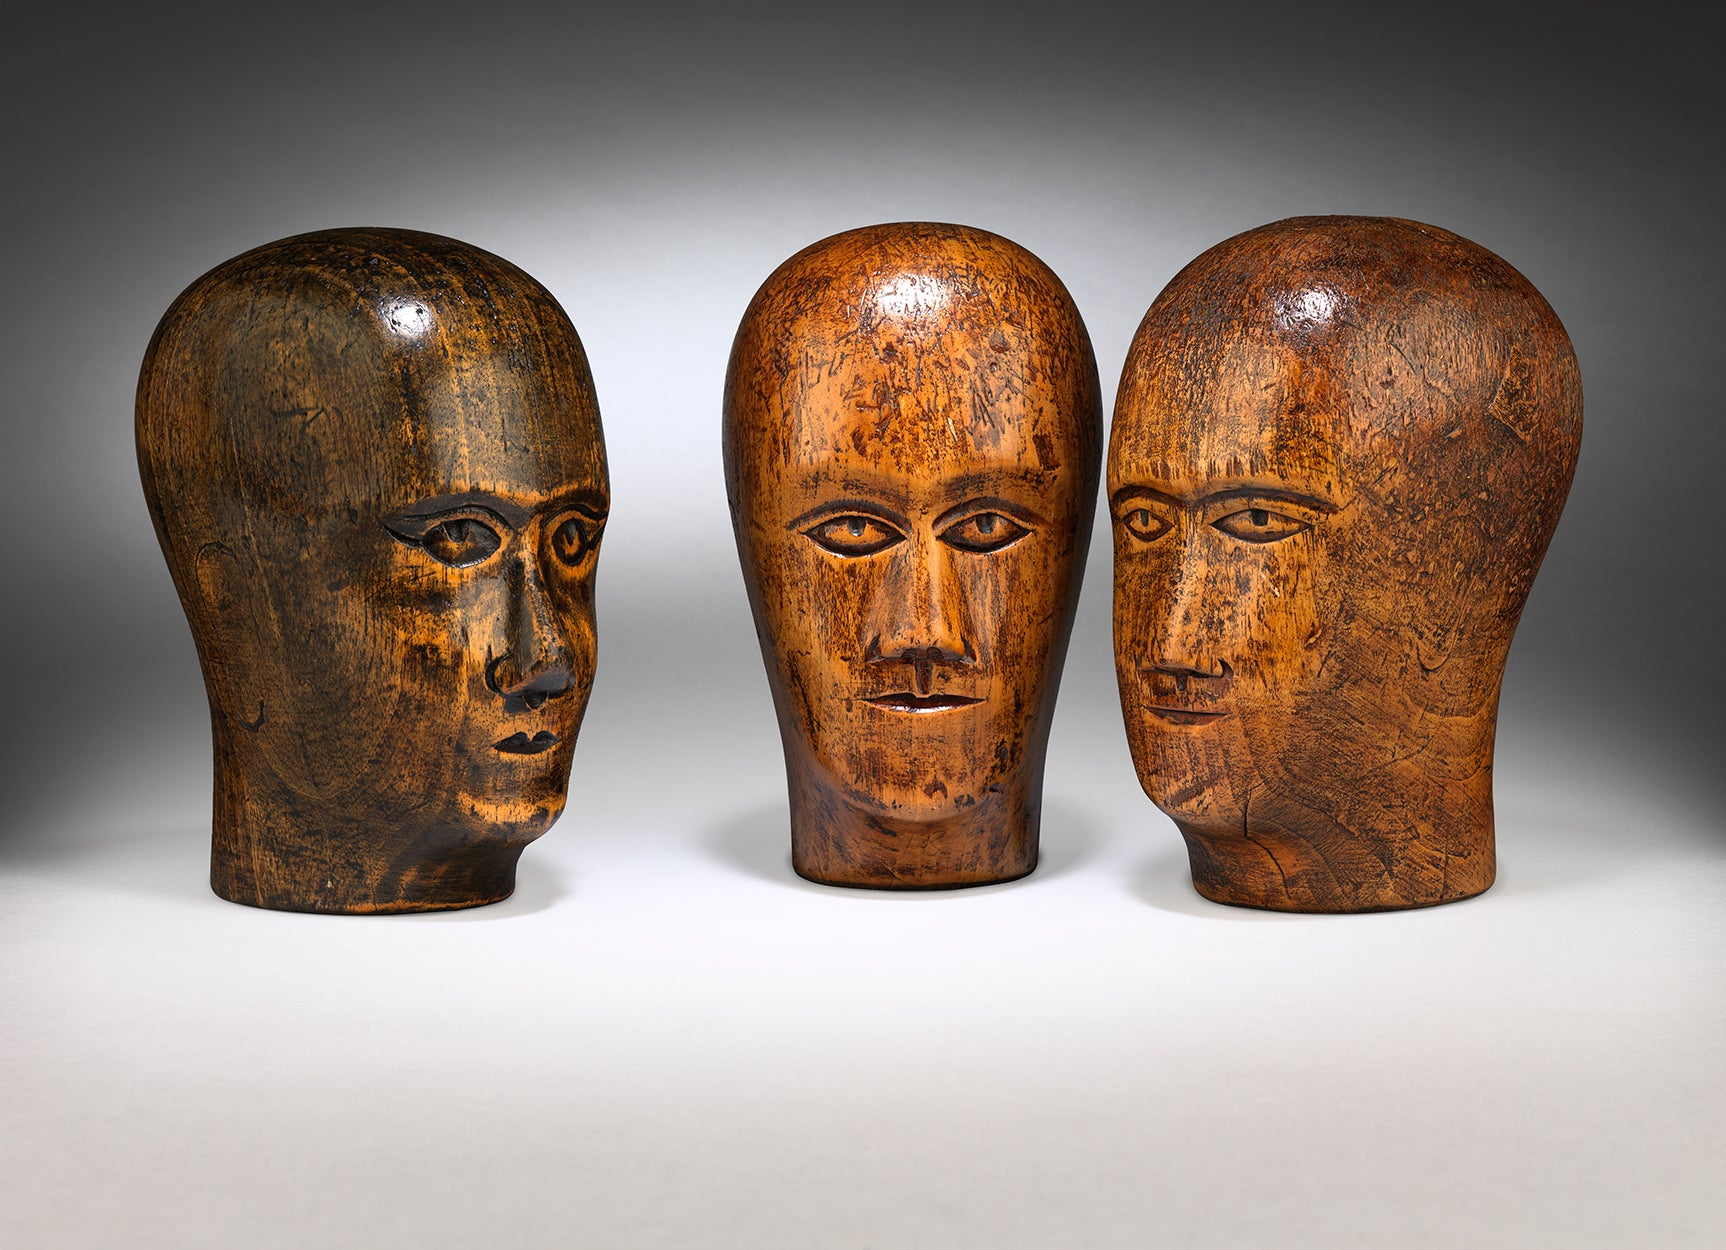 A Group of Three Milliner's Heads